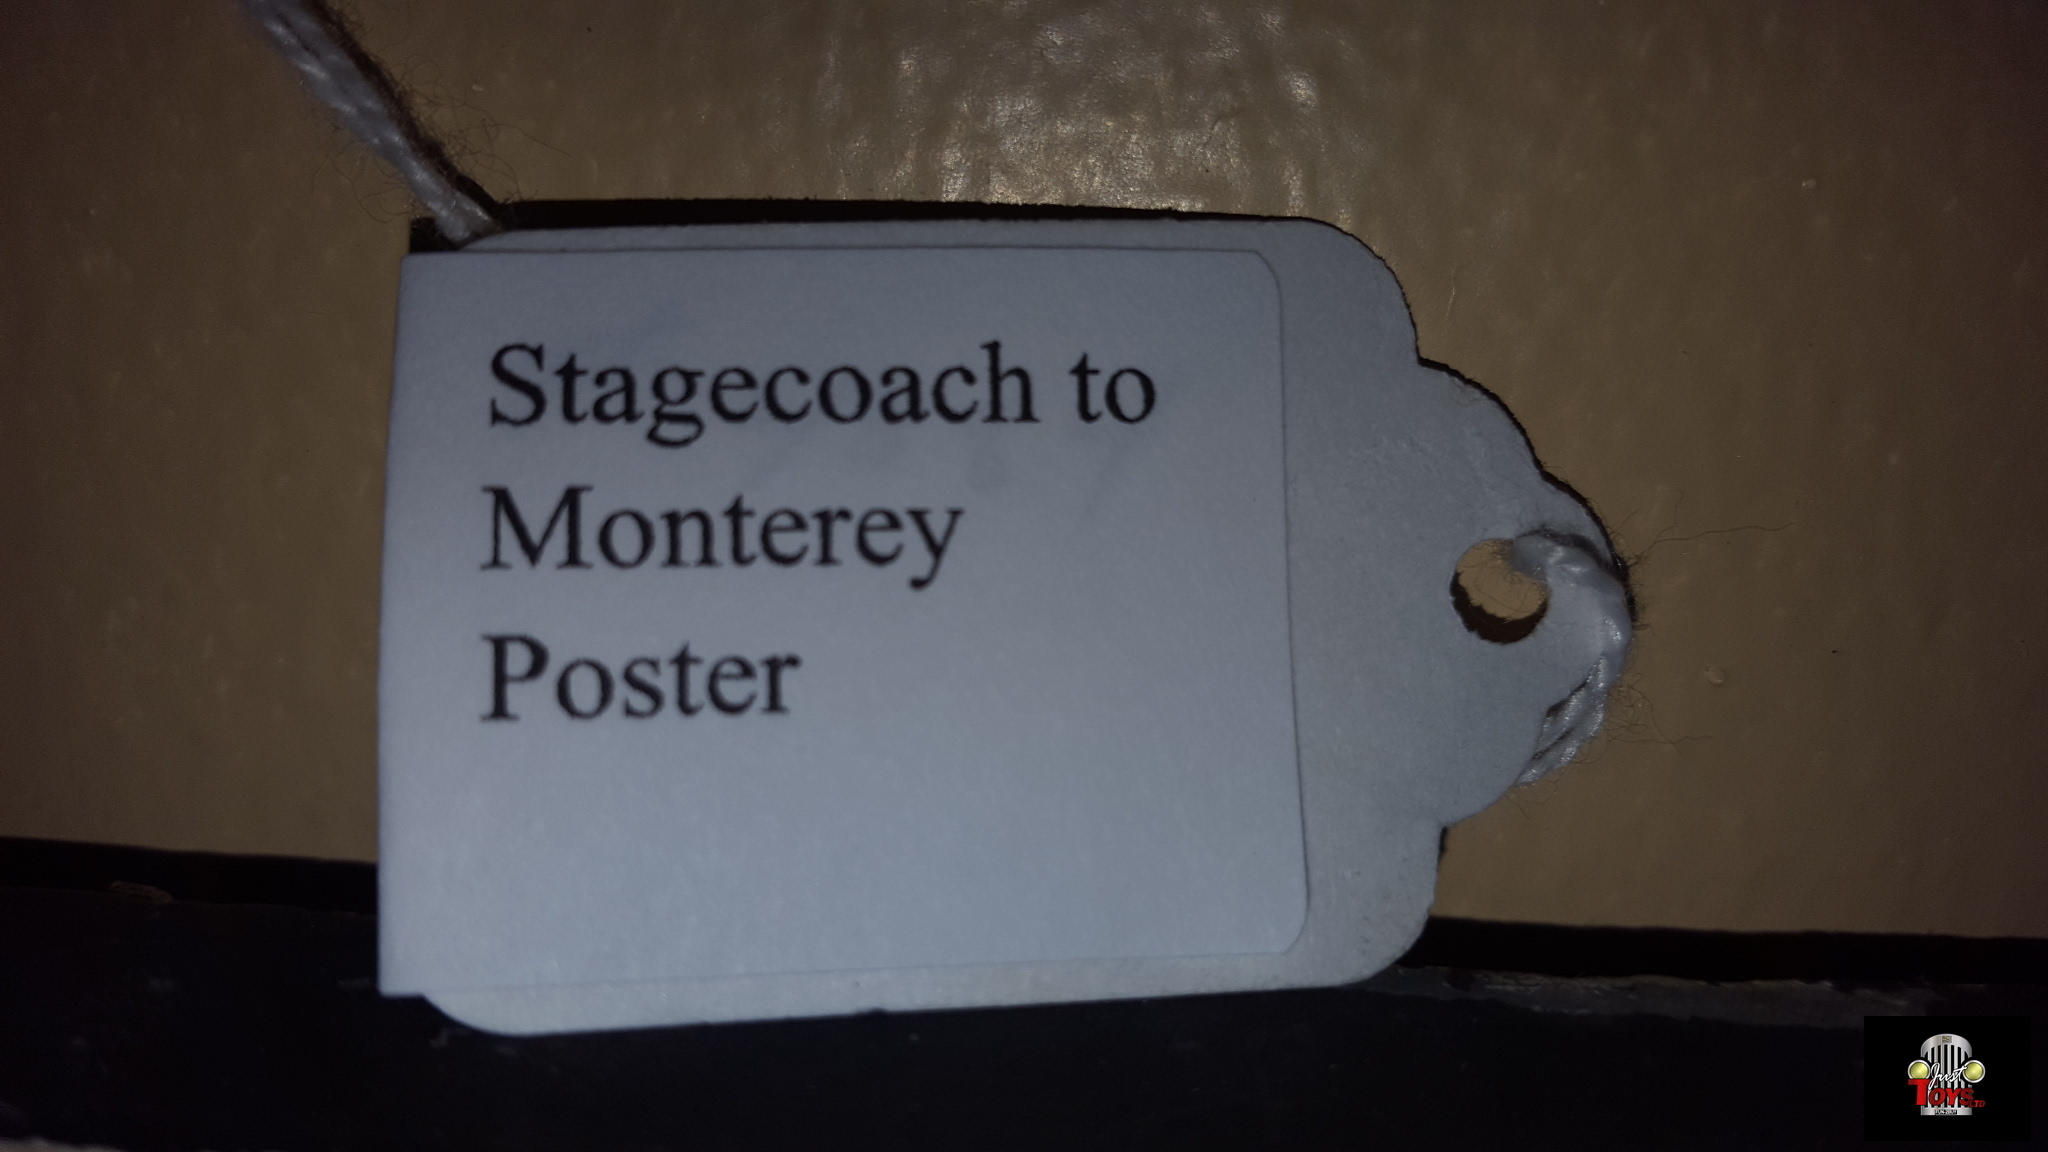 Stagecoach to Monterey Poster